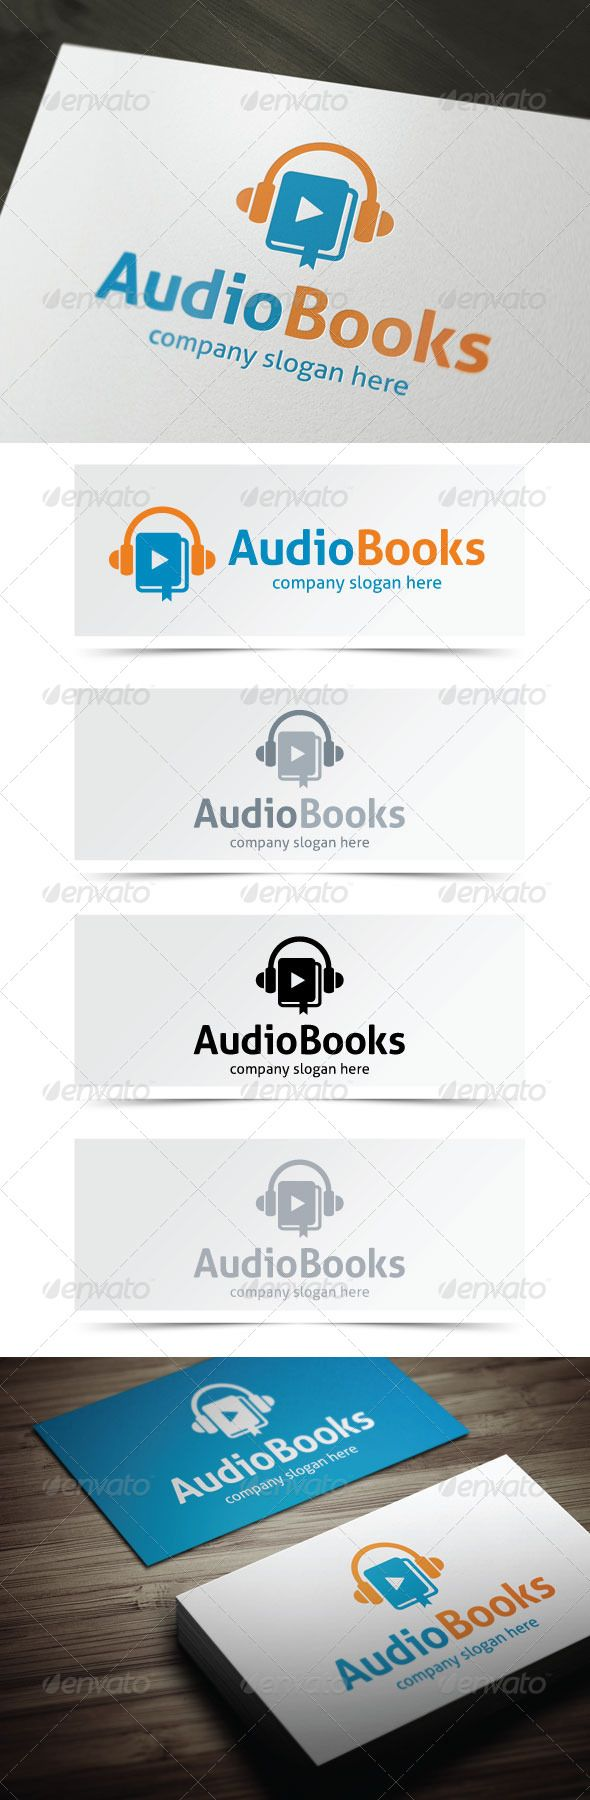 Audio Books - Logo Design Template Vector #logotype Download it here: http://graphicriver.net/item/audio-books/5171775?s_rank=316?ref=nexion